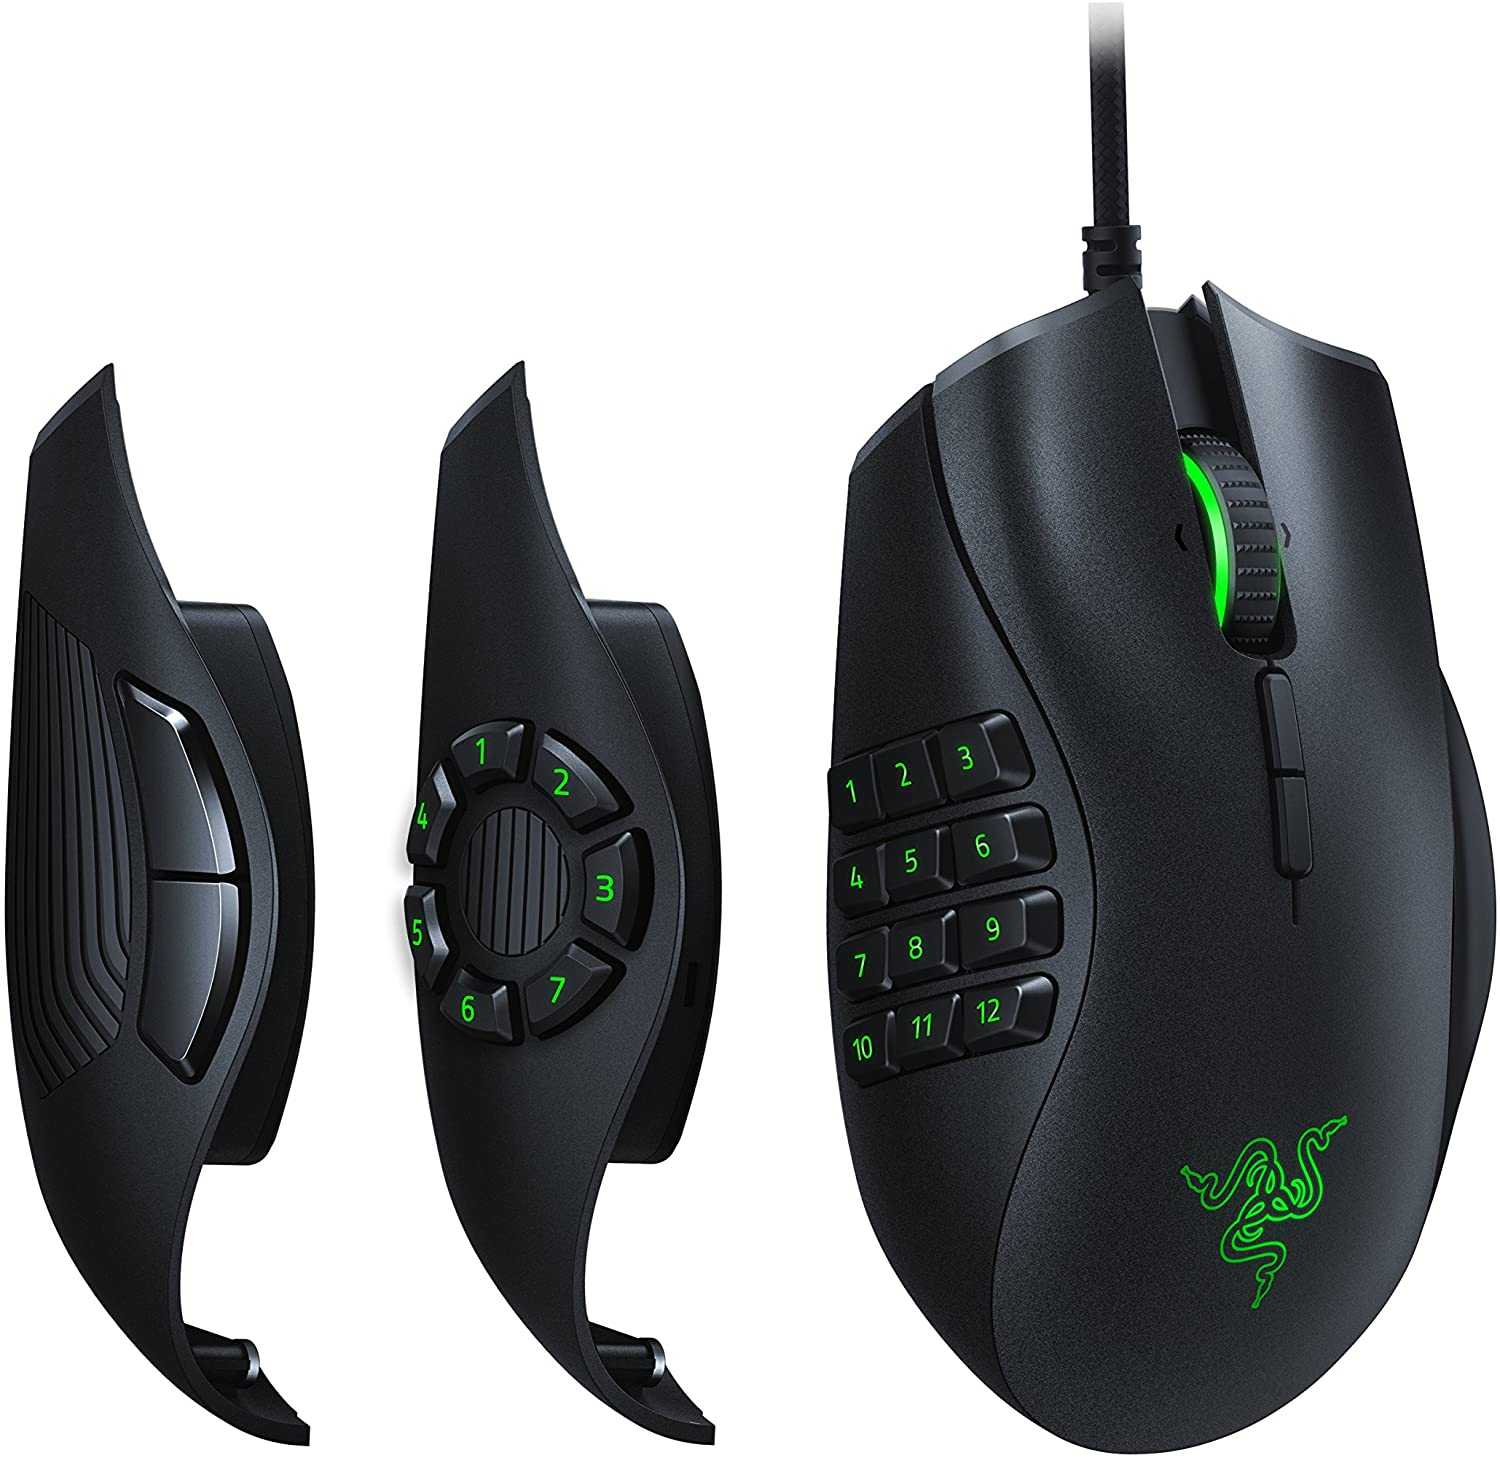 12 Best FPS Mouse For First Person Shooter Gaming - 2021 7